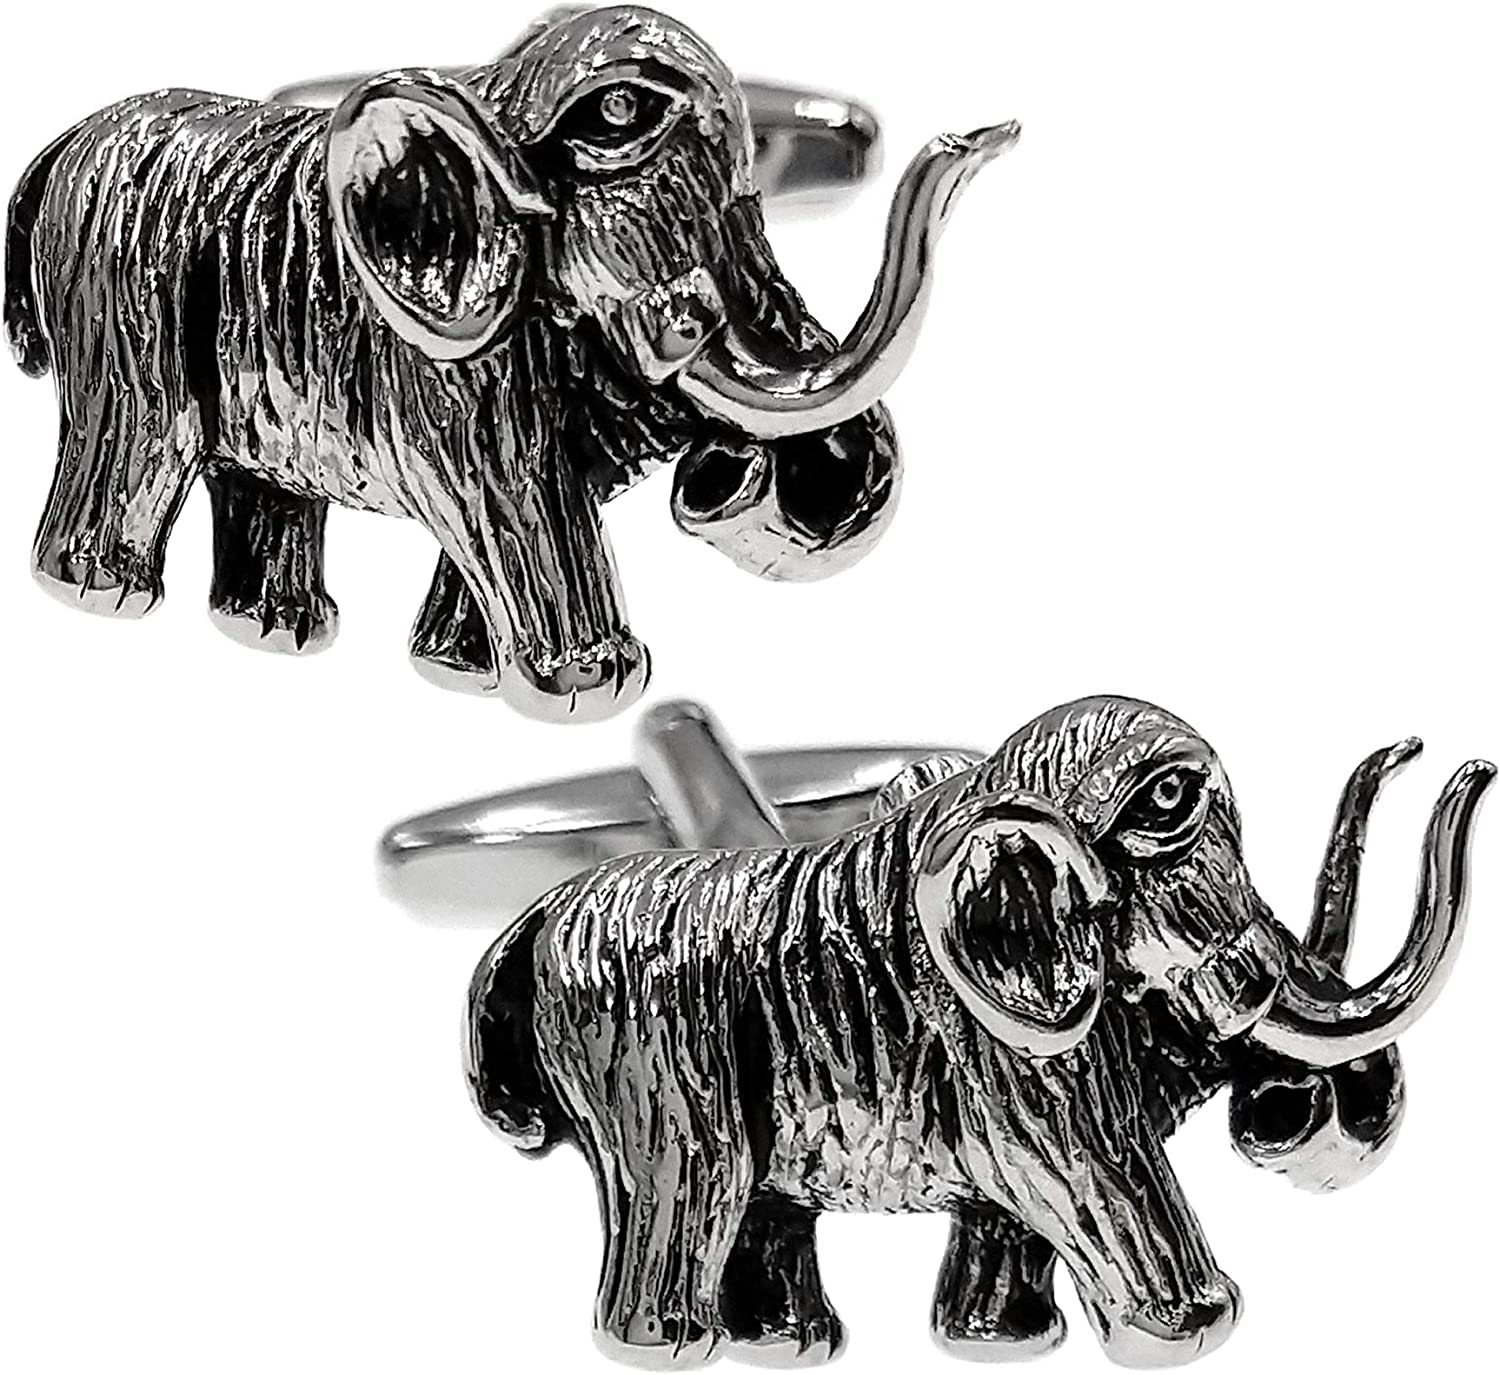 Thot Ra Woolly Mammoth Al sold out. Last 2021 new Ice For Age Mo Men Cufflinks Premiun